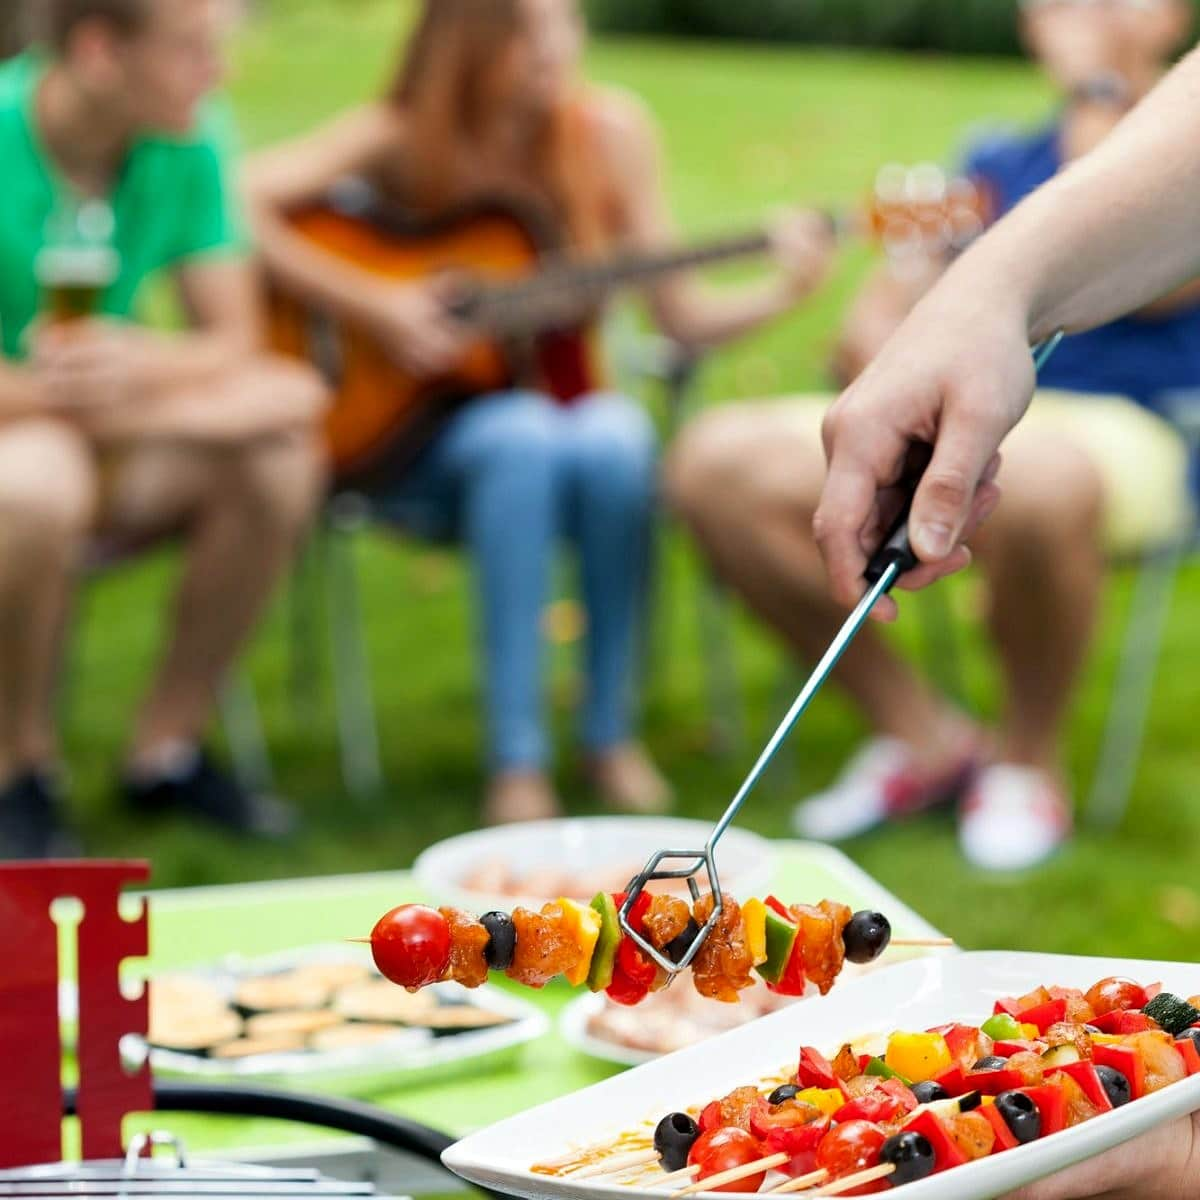 11 Backyard Barbecue Party Tips to Impress Your Guests without Stress